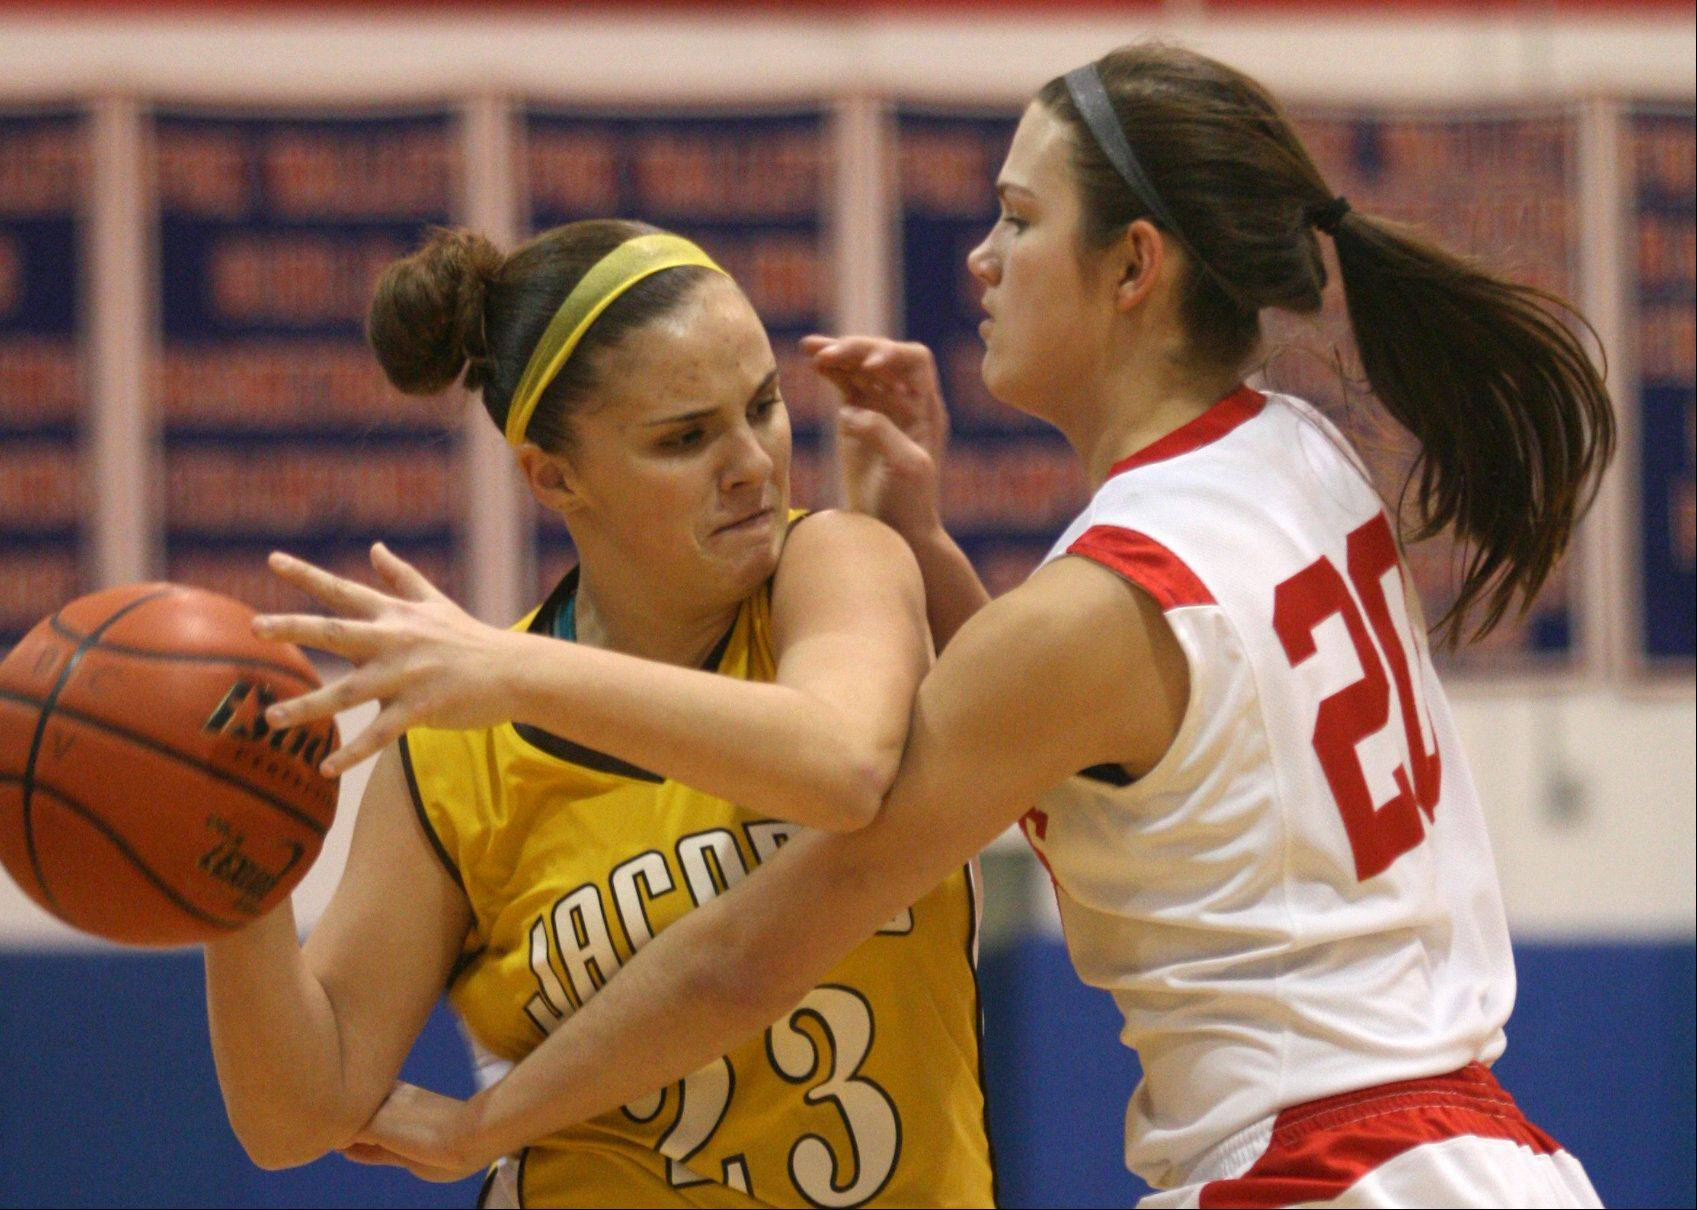 Jacobs' Tiffany Frighetto, left, tries to get past Dundee-Crown's Frankie Cavallaro Friday night at D-C.